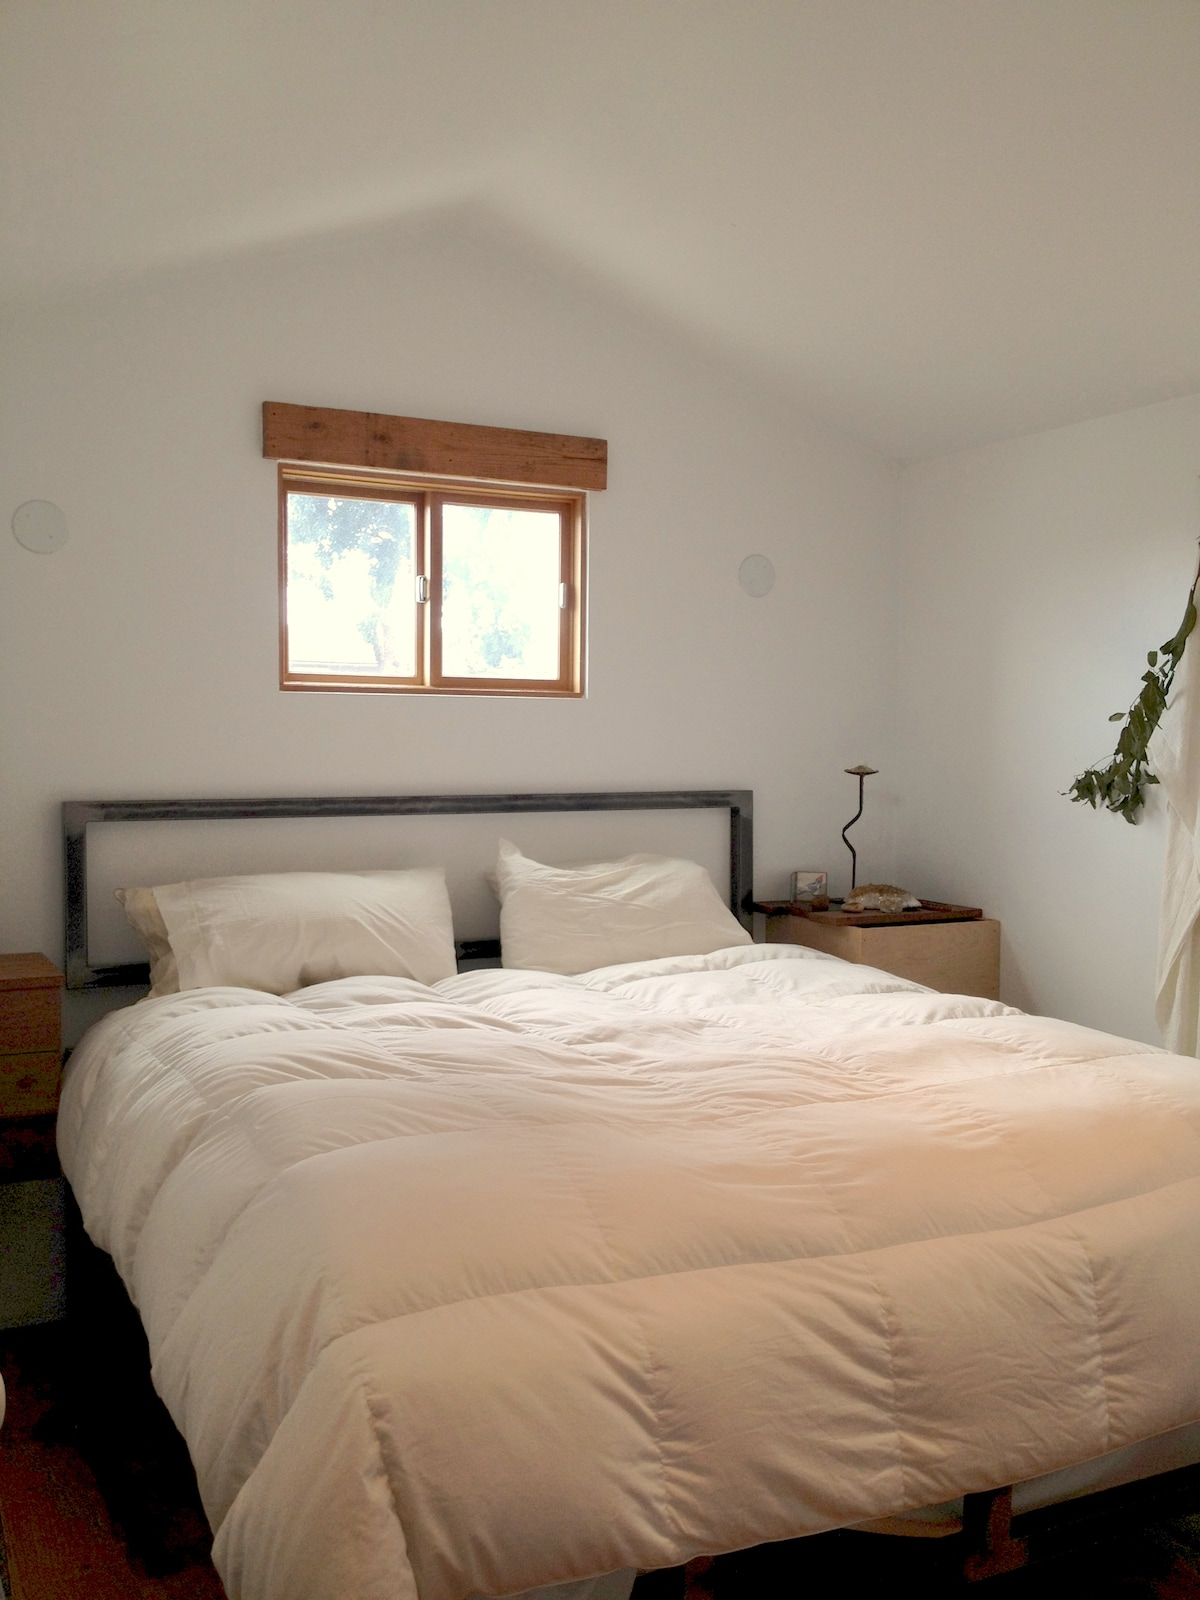 Love Birds, come sink into this comfy California King Bed in your private bedroom sanctuary.